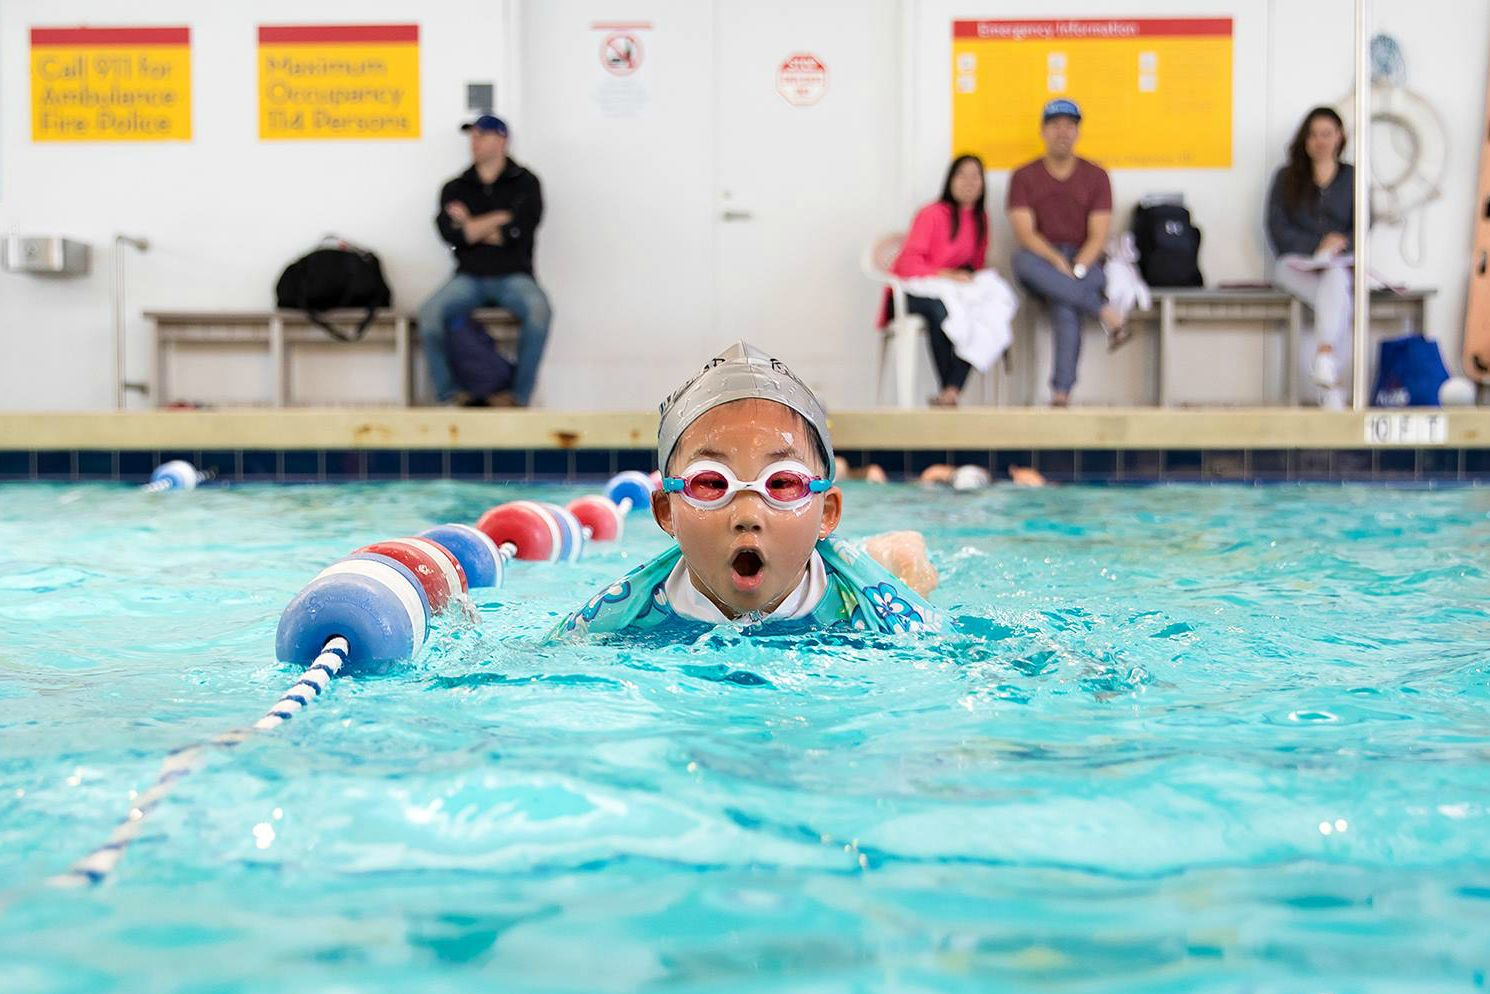 10 Great Private Swimming Classes And Swim Schools For La Kids Swimming Classes Swim School Kids Things To Do